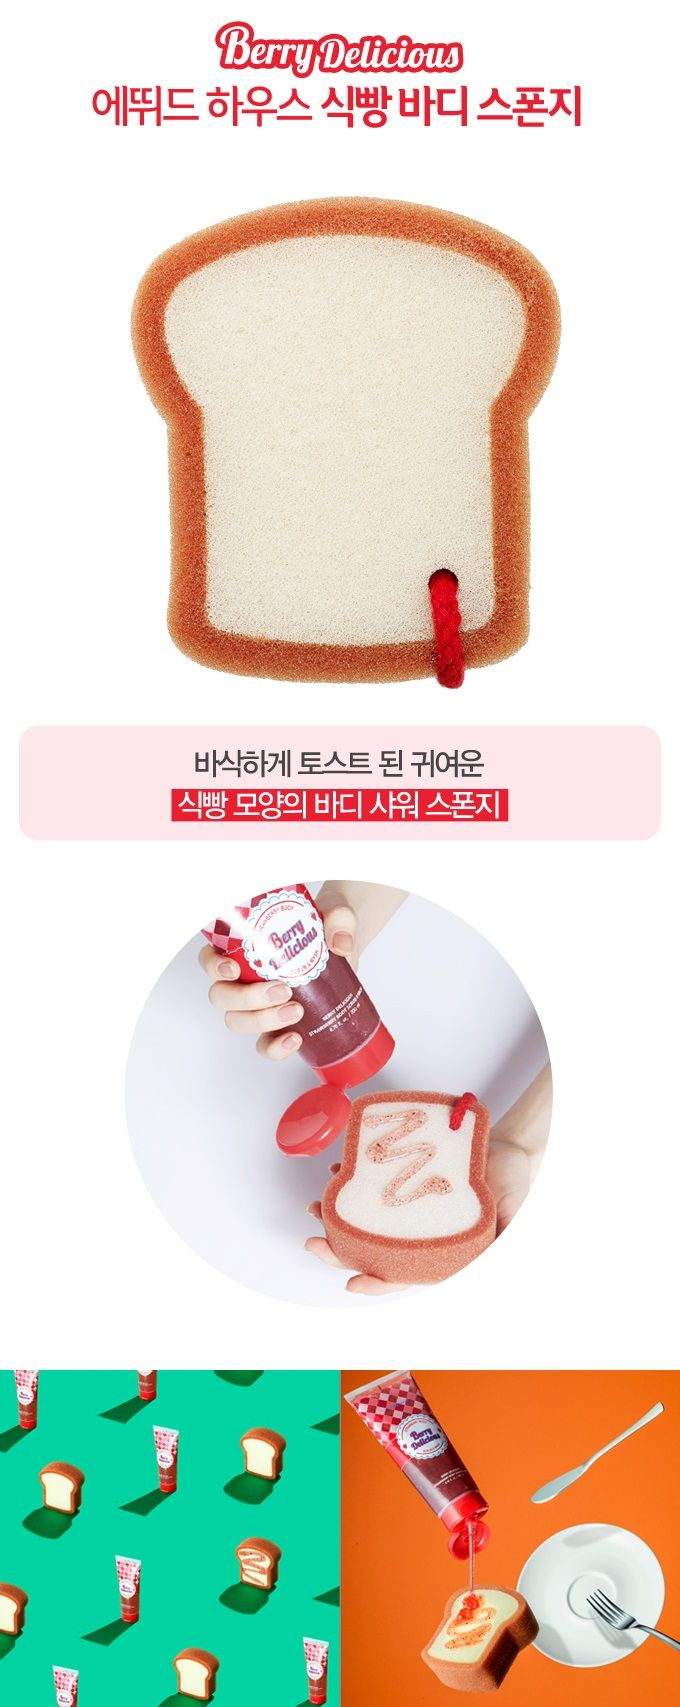 [ETUDE HOUSE] Berry Delicious Bread Shower Sponge